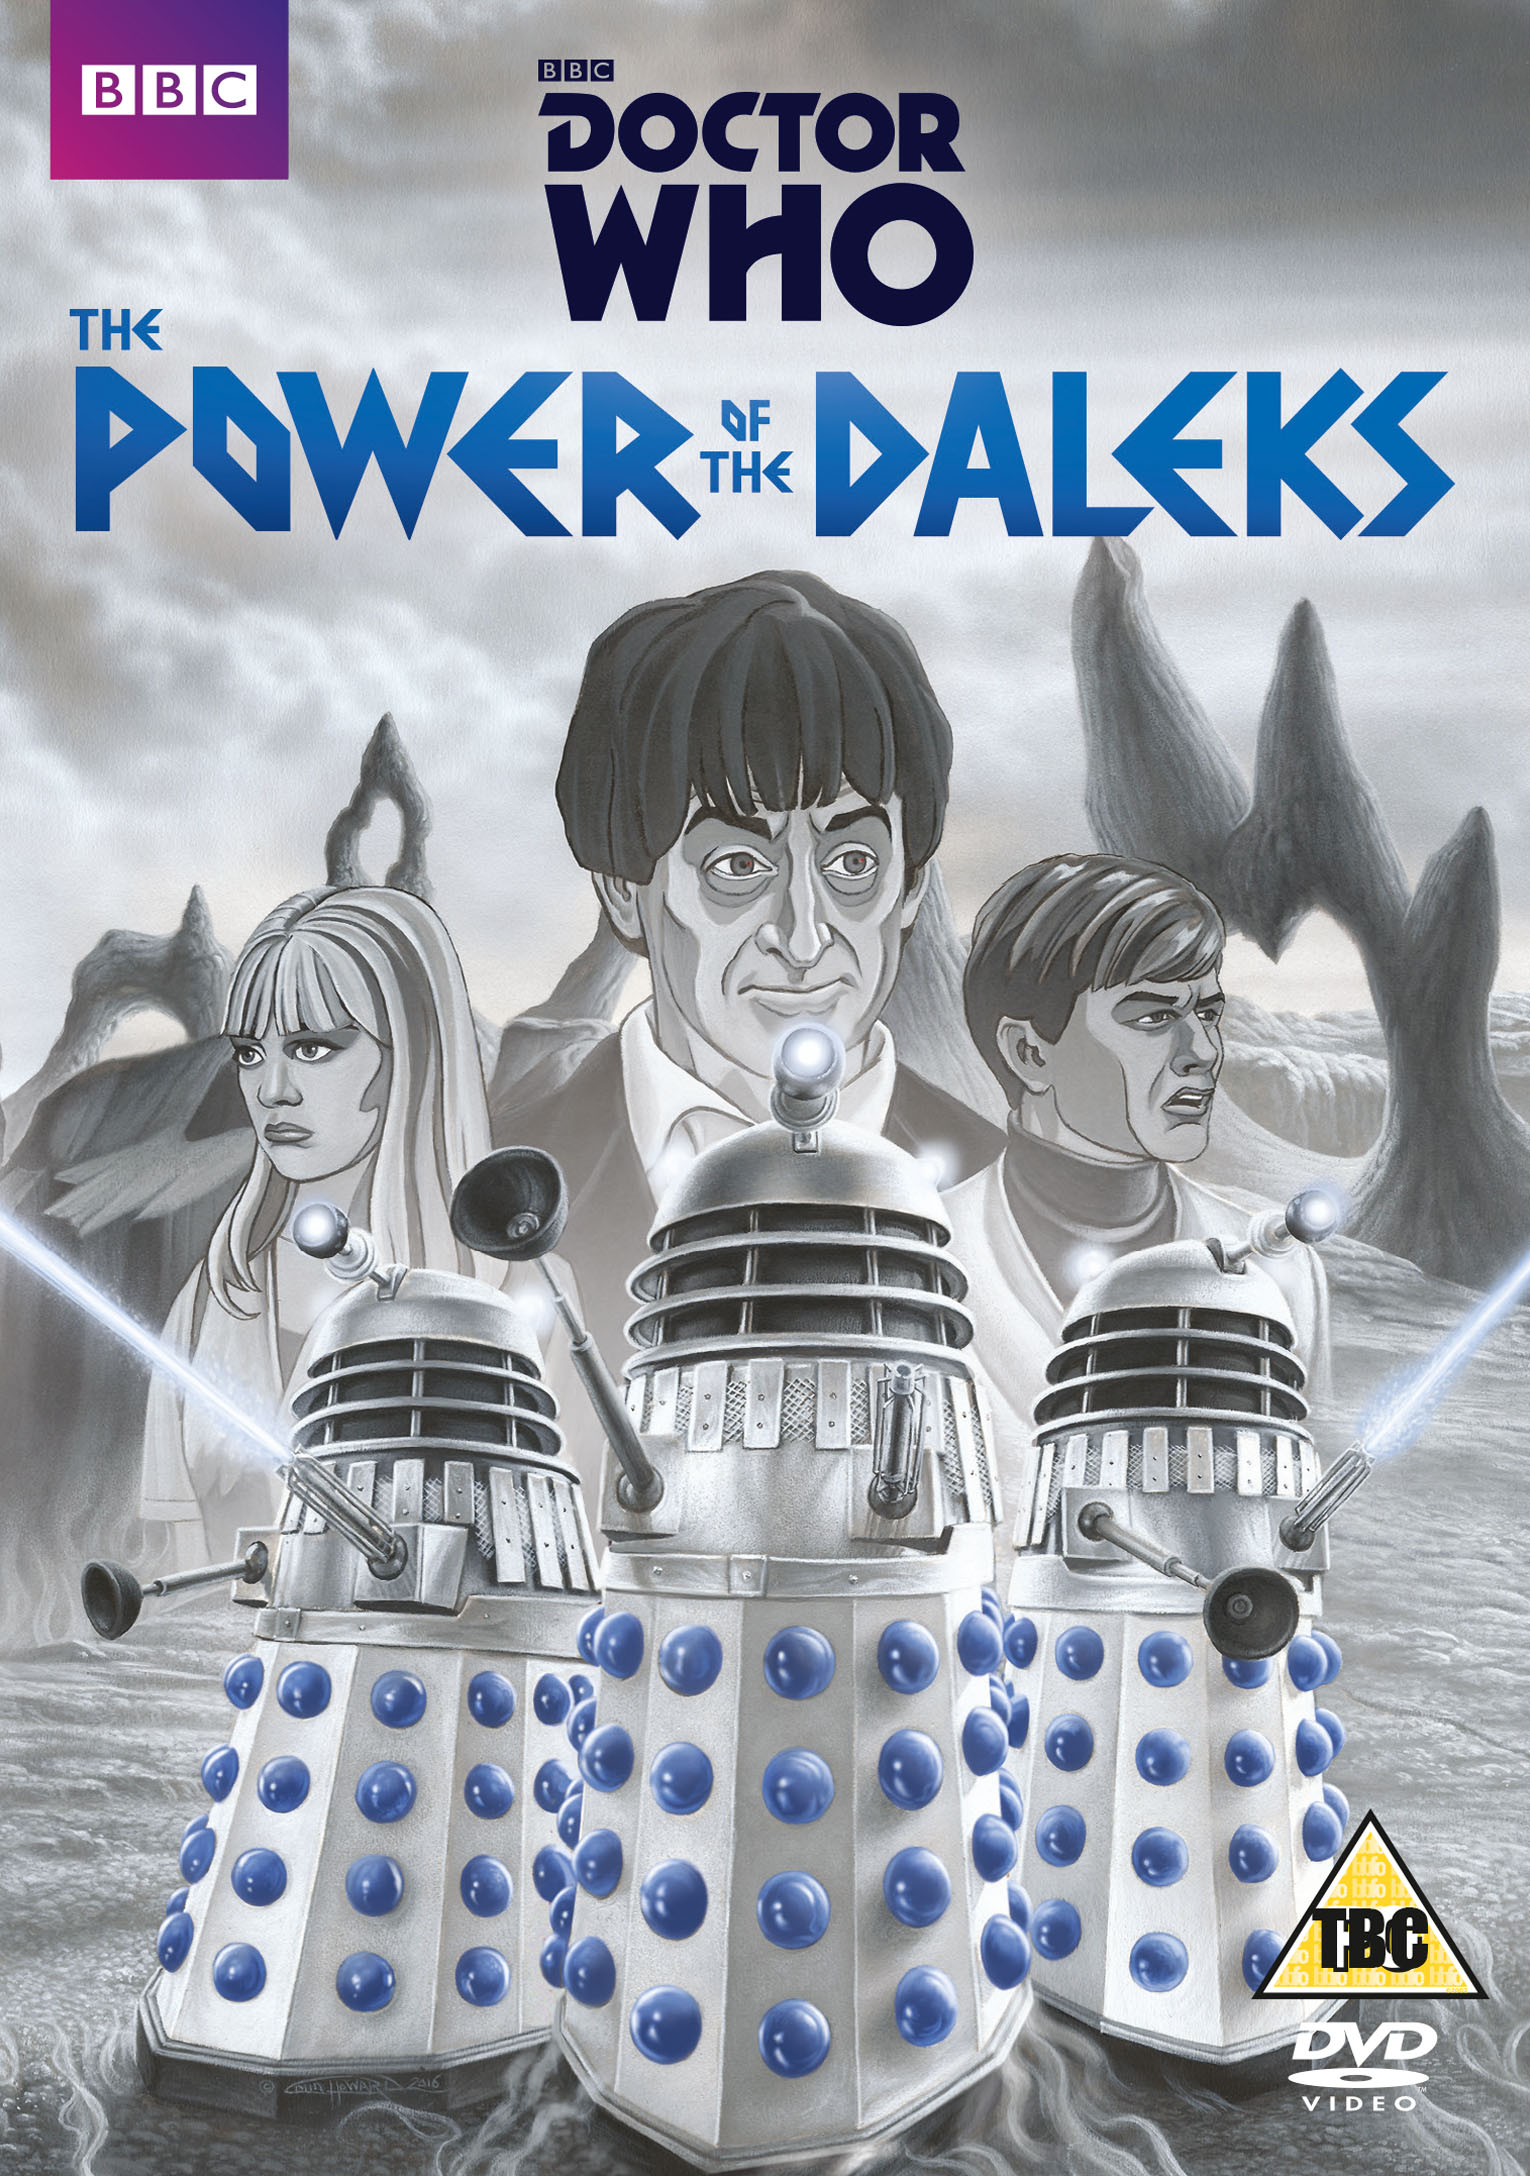 The Power of the Daleks (Credit: BBC Worldwide)